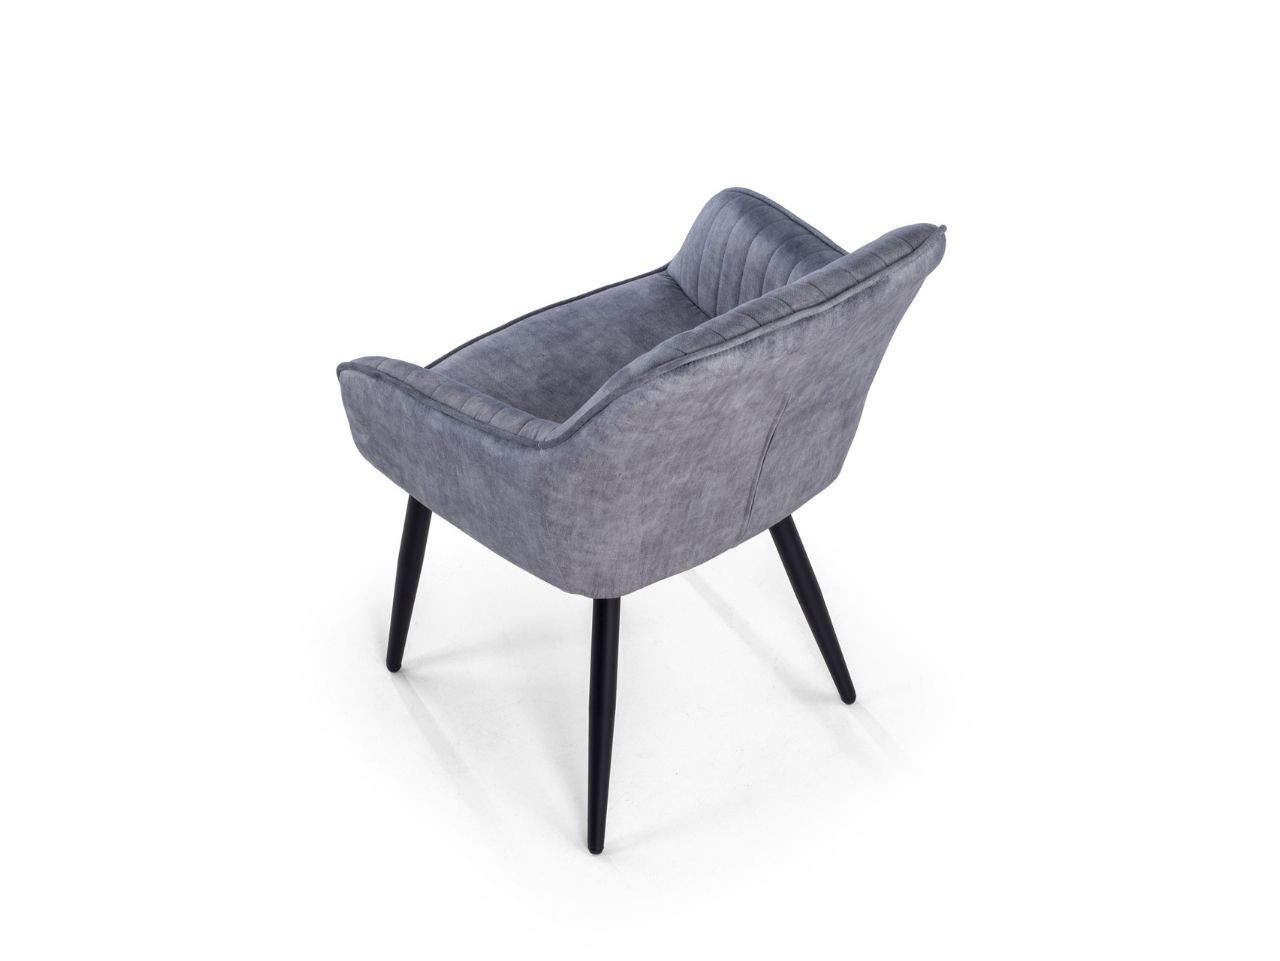 Tiendas de sofas en badalona awesome with tiendas de for Sofas cheslong baratos